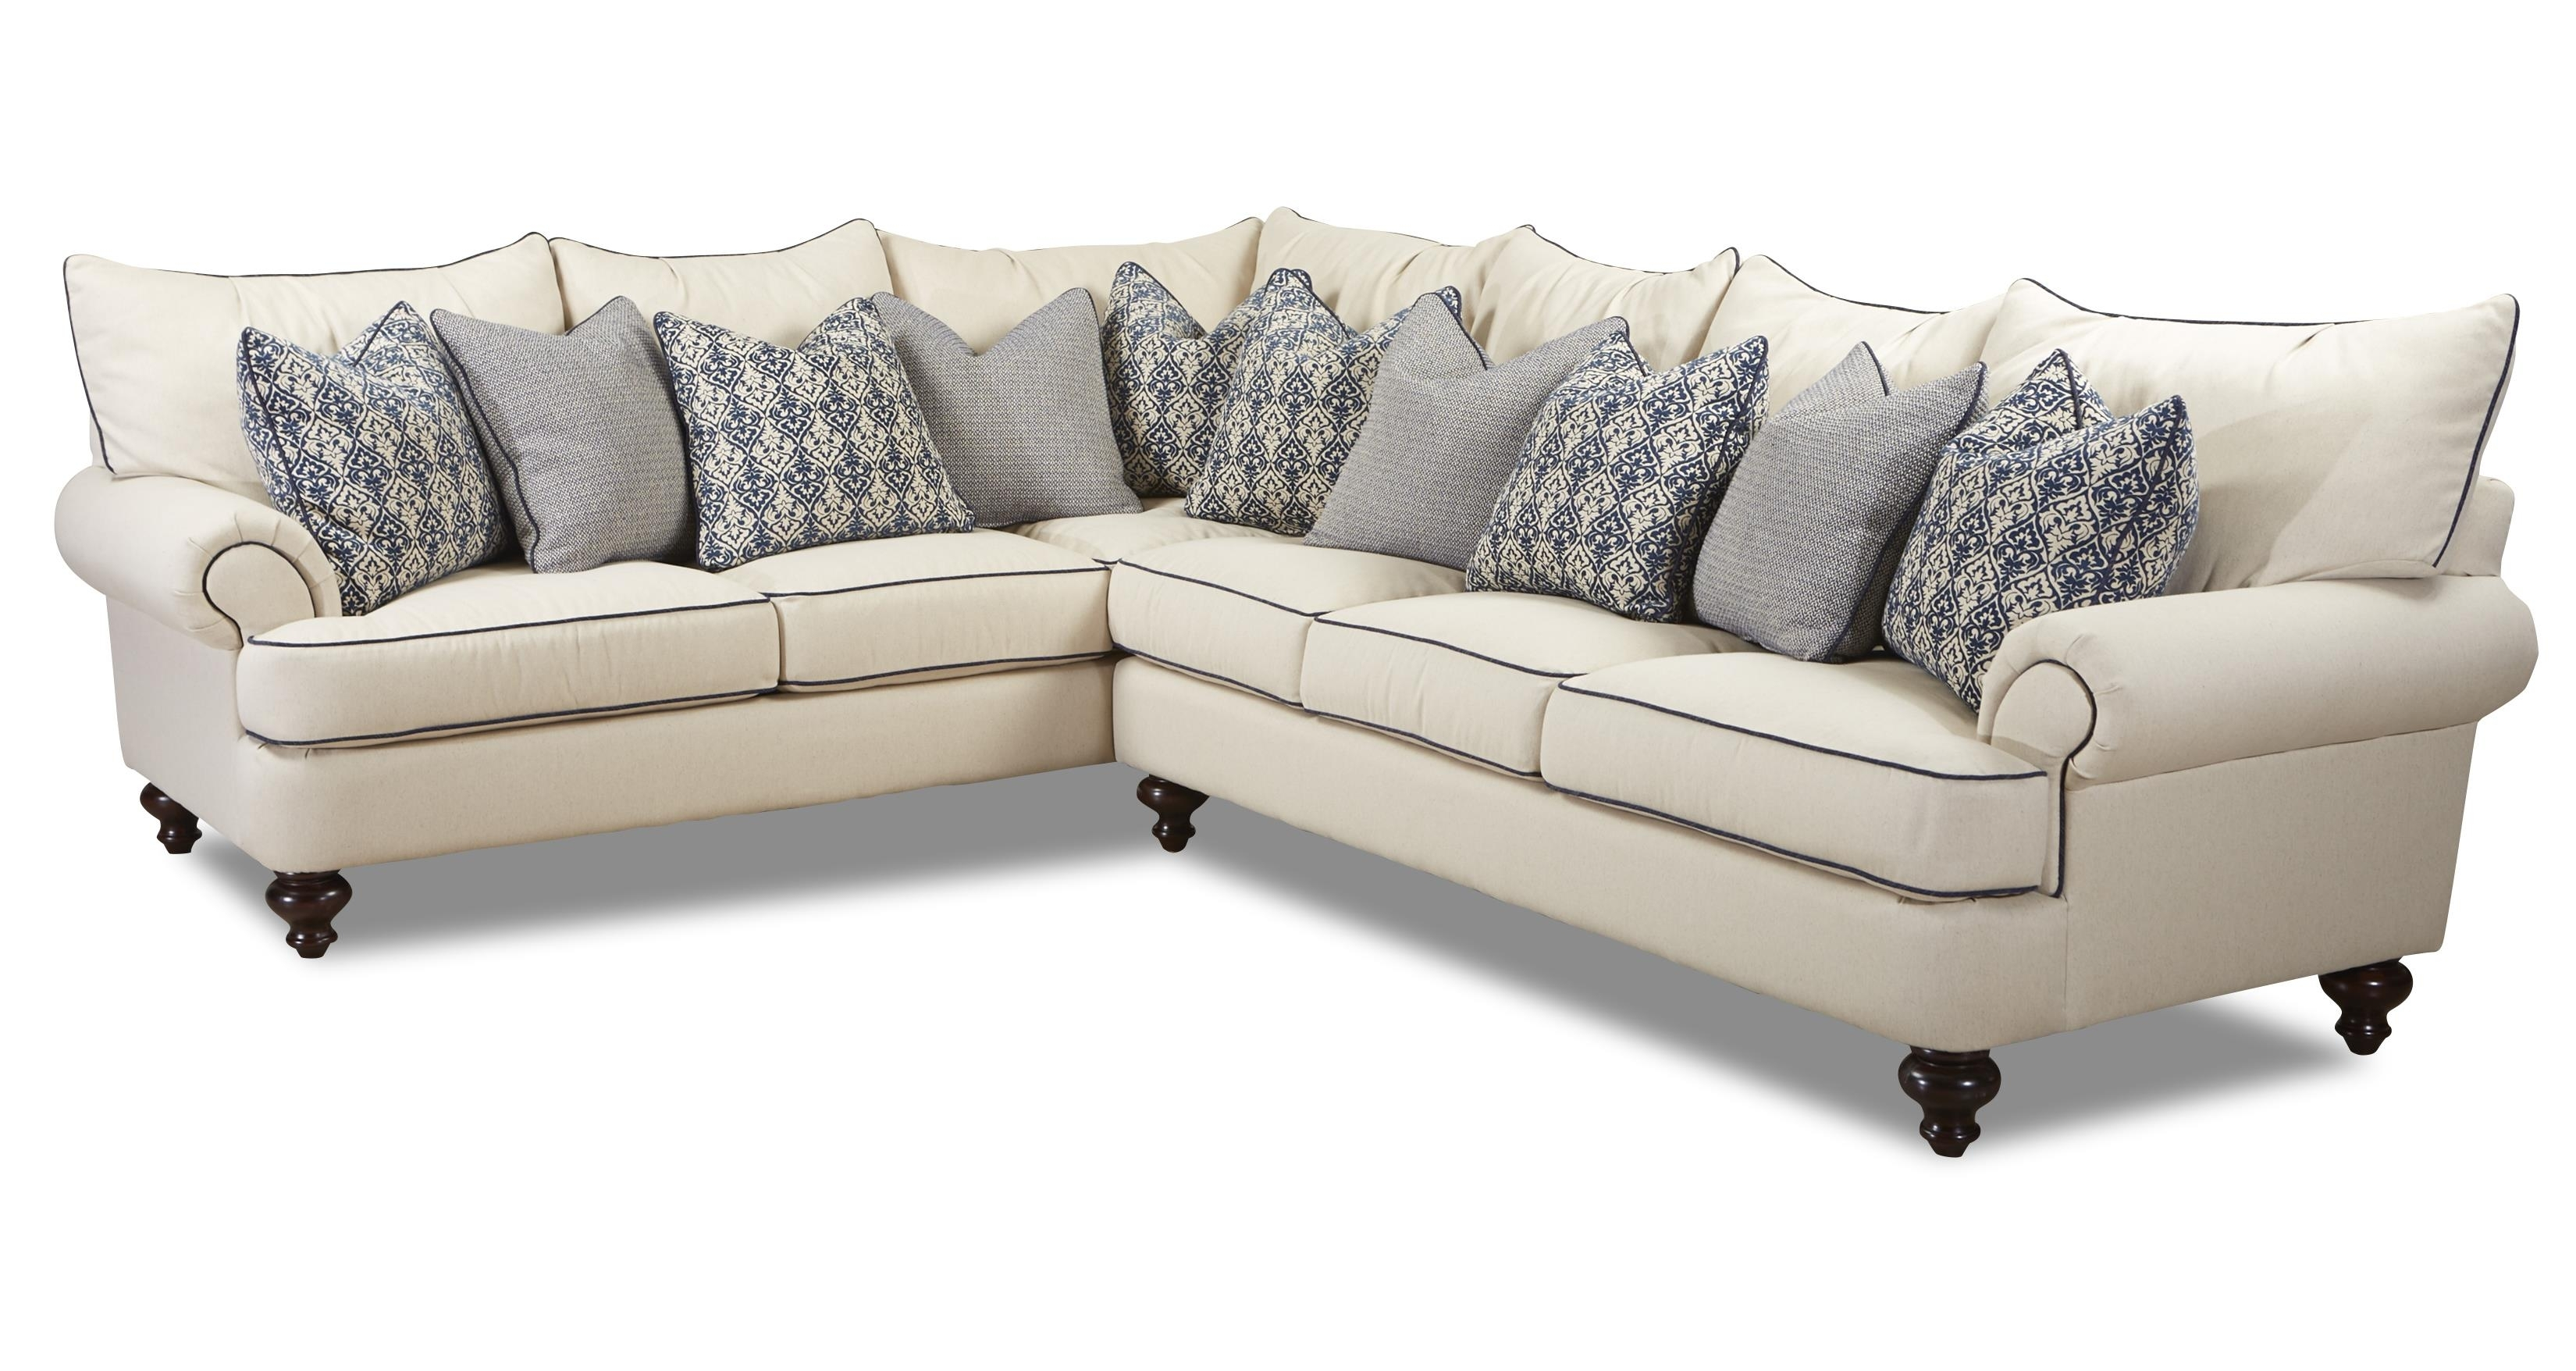 Shabby Chic Sectional Sofaklaussner | Wolf And Gardiner Wolf Inside Gardiners Sectional Sofas (View 3 of 10)